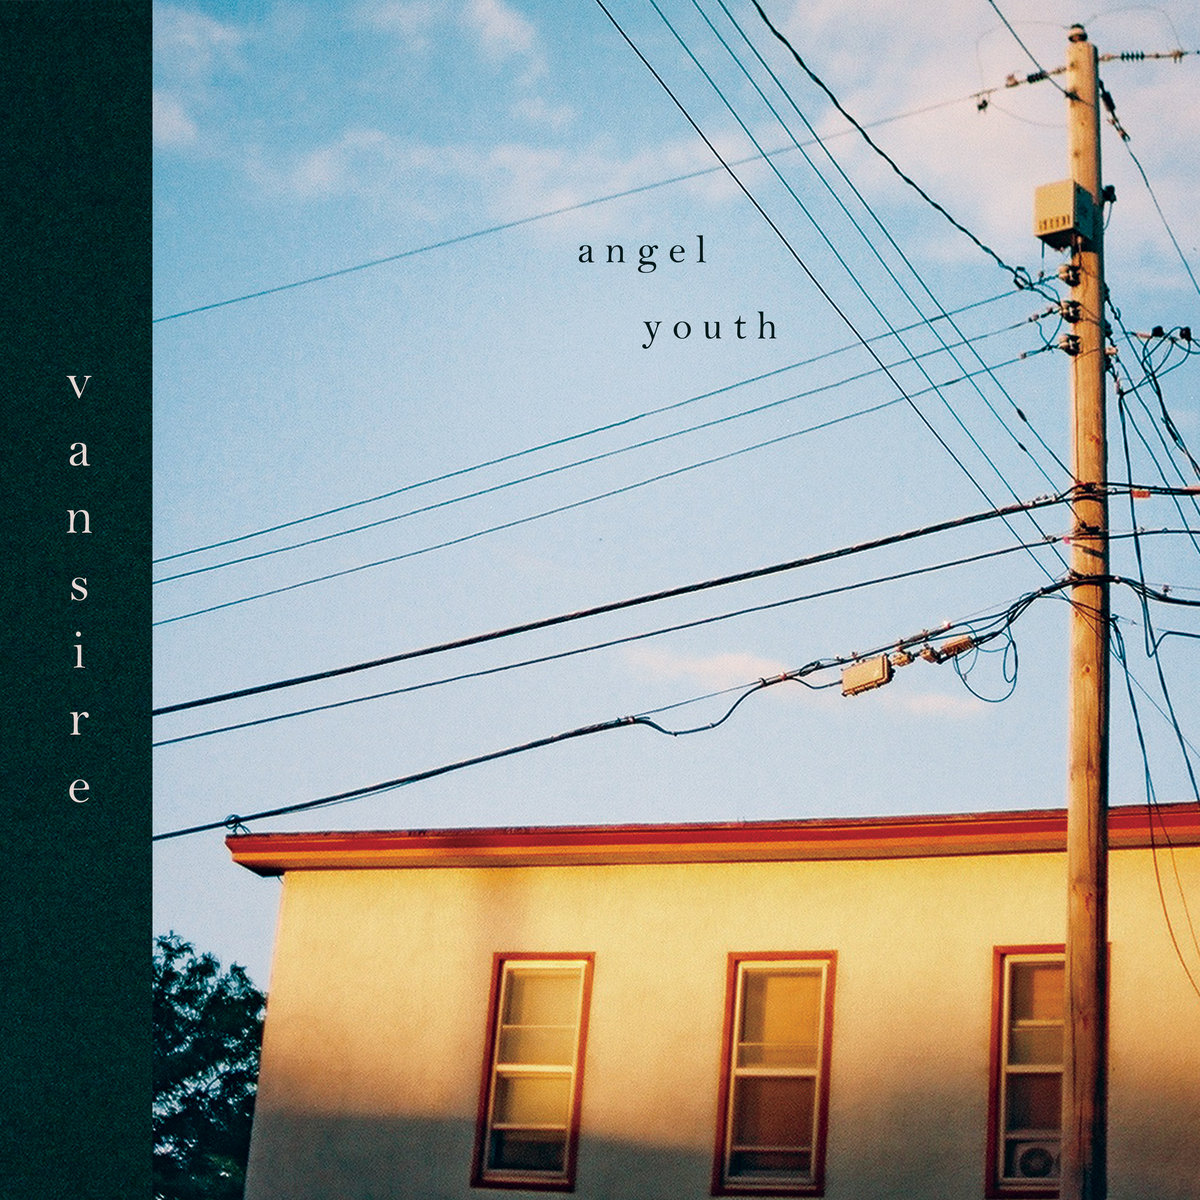 Vansire released  Angel Youth  earlier this year. The album features multiple collaborations with other artists.   Album art owned by Vansire.